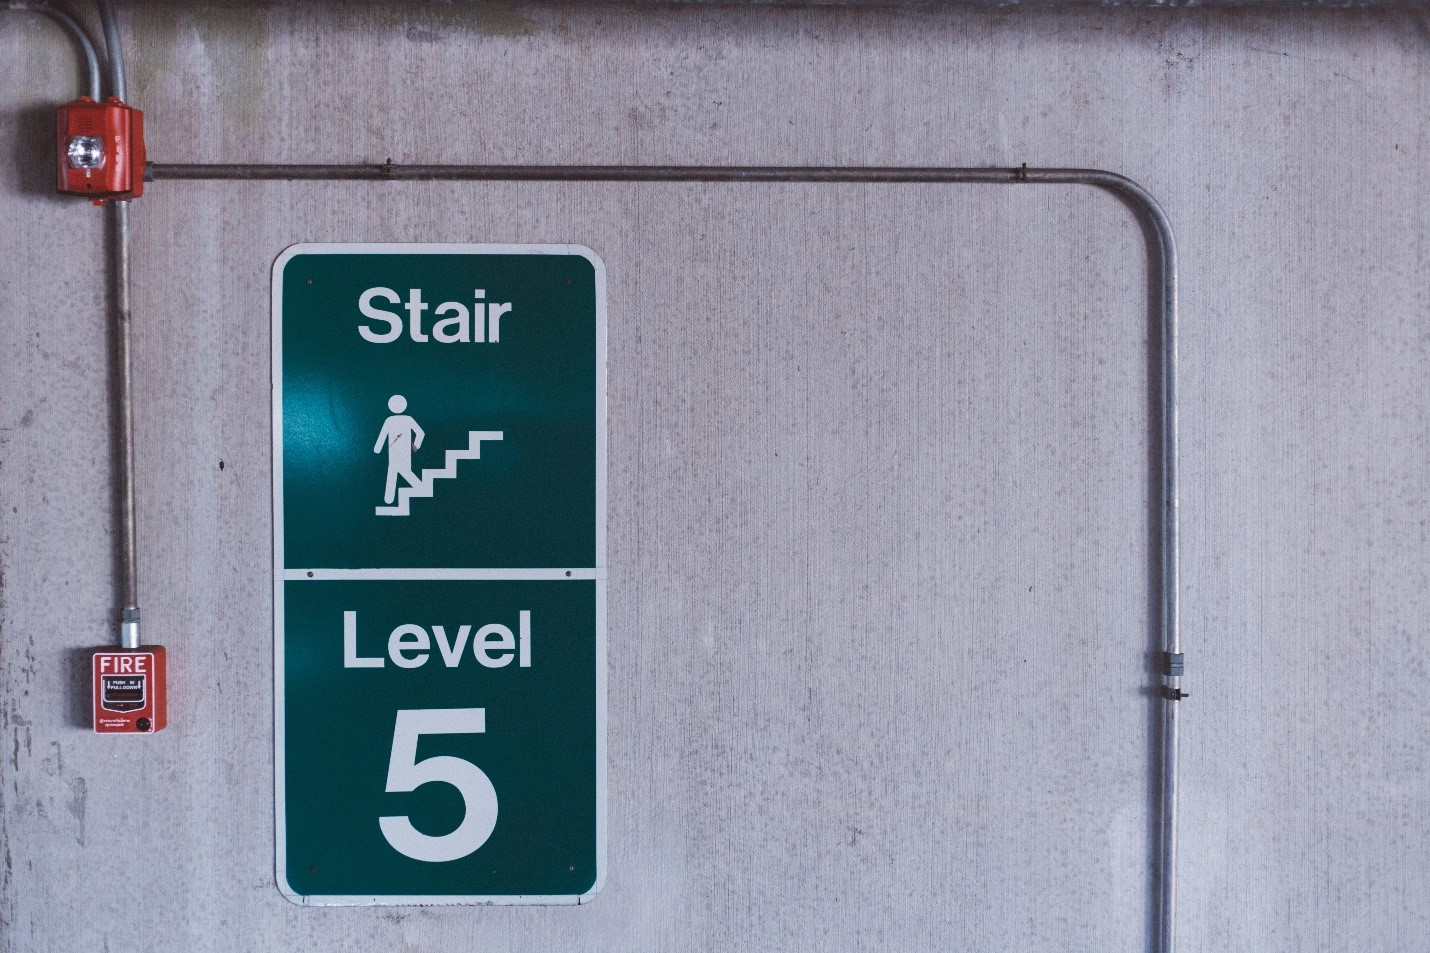 fire alarm and stair sign